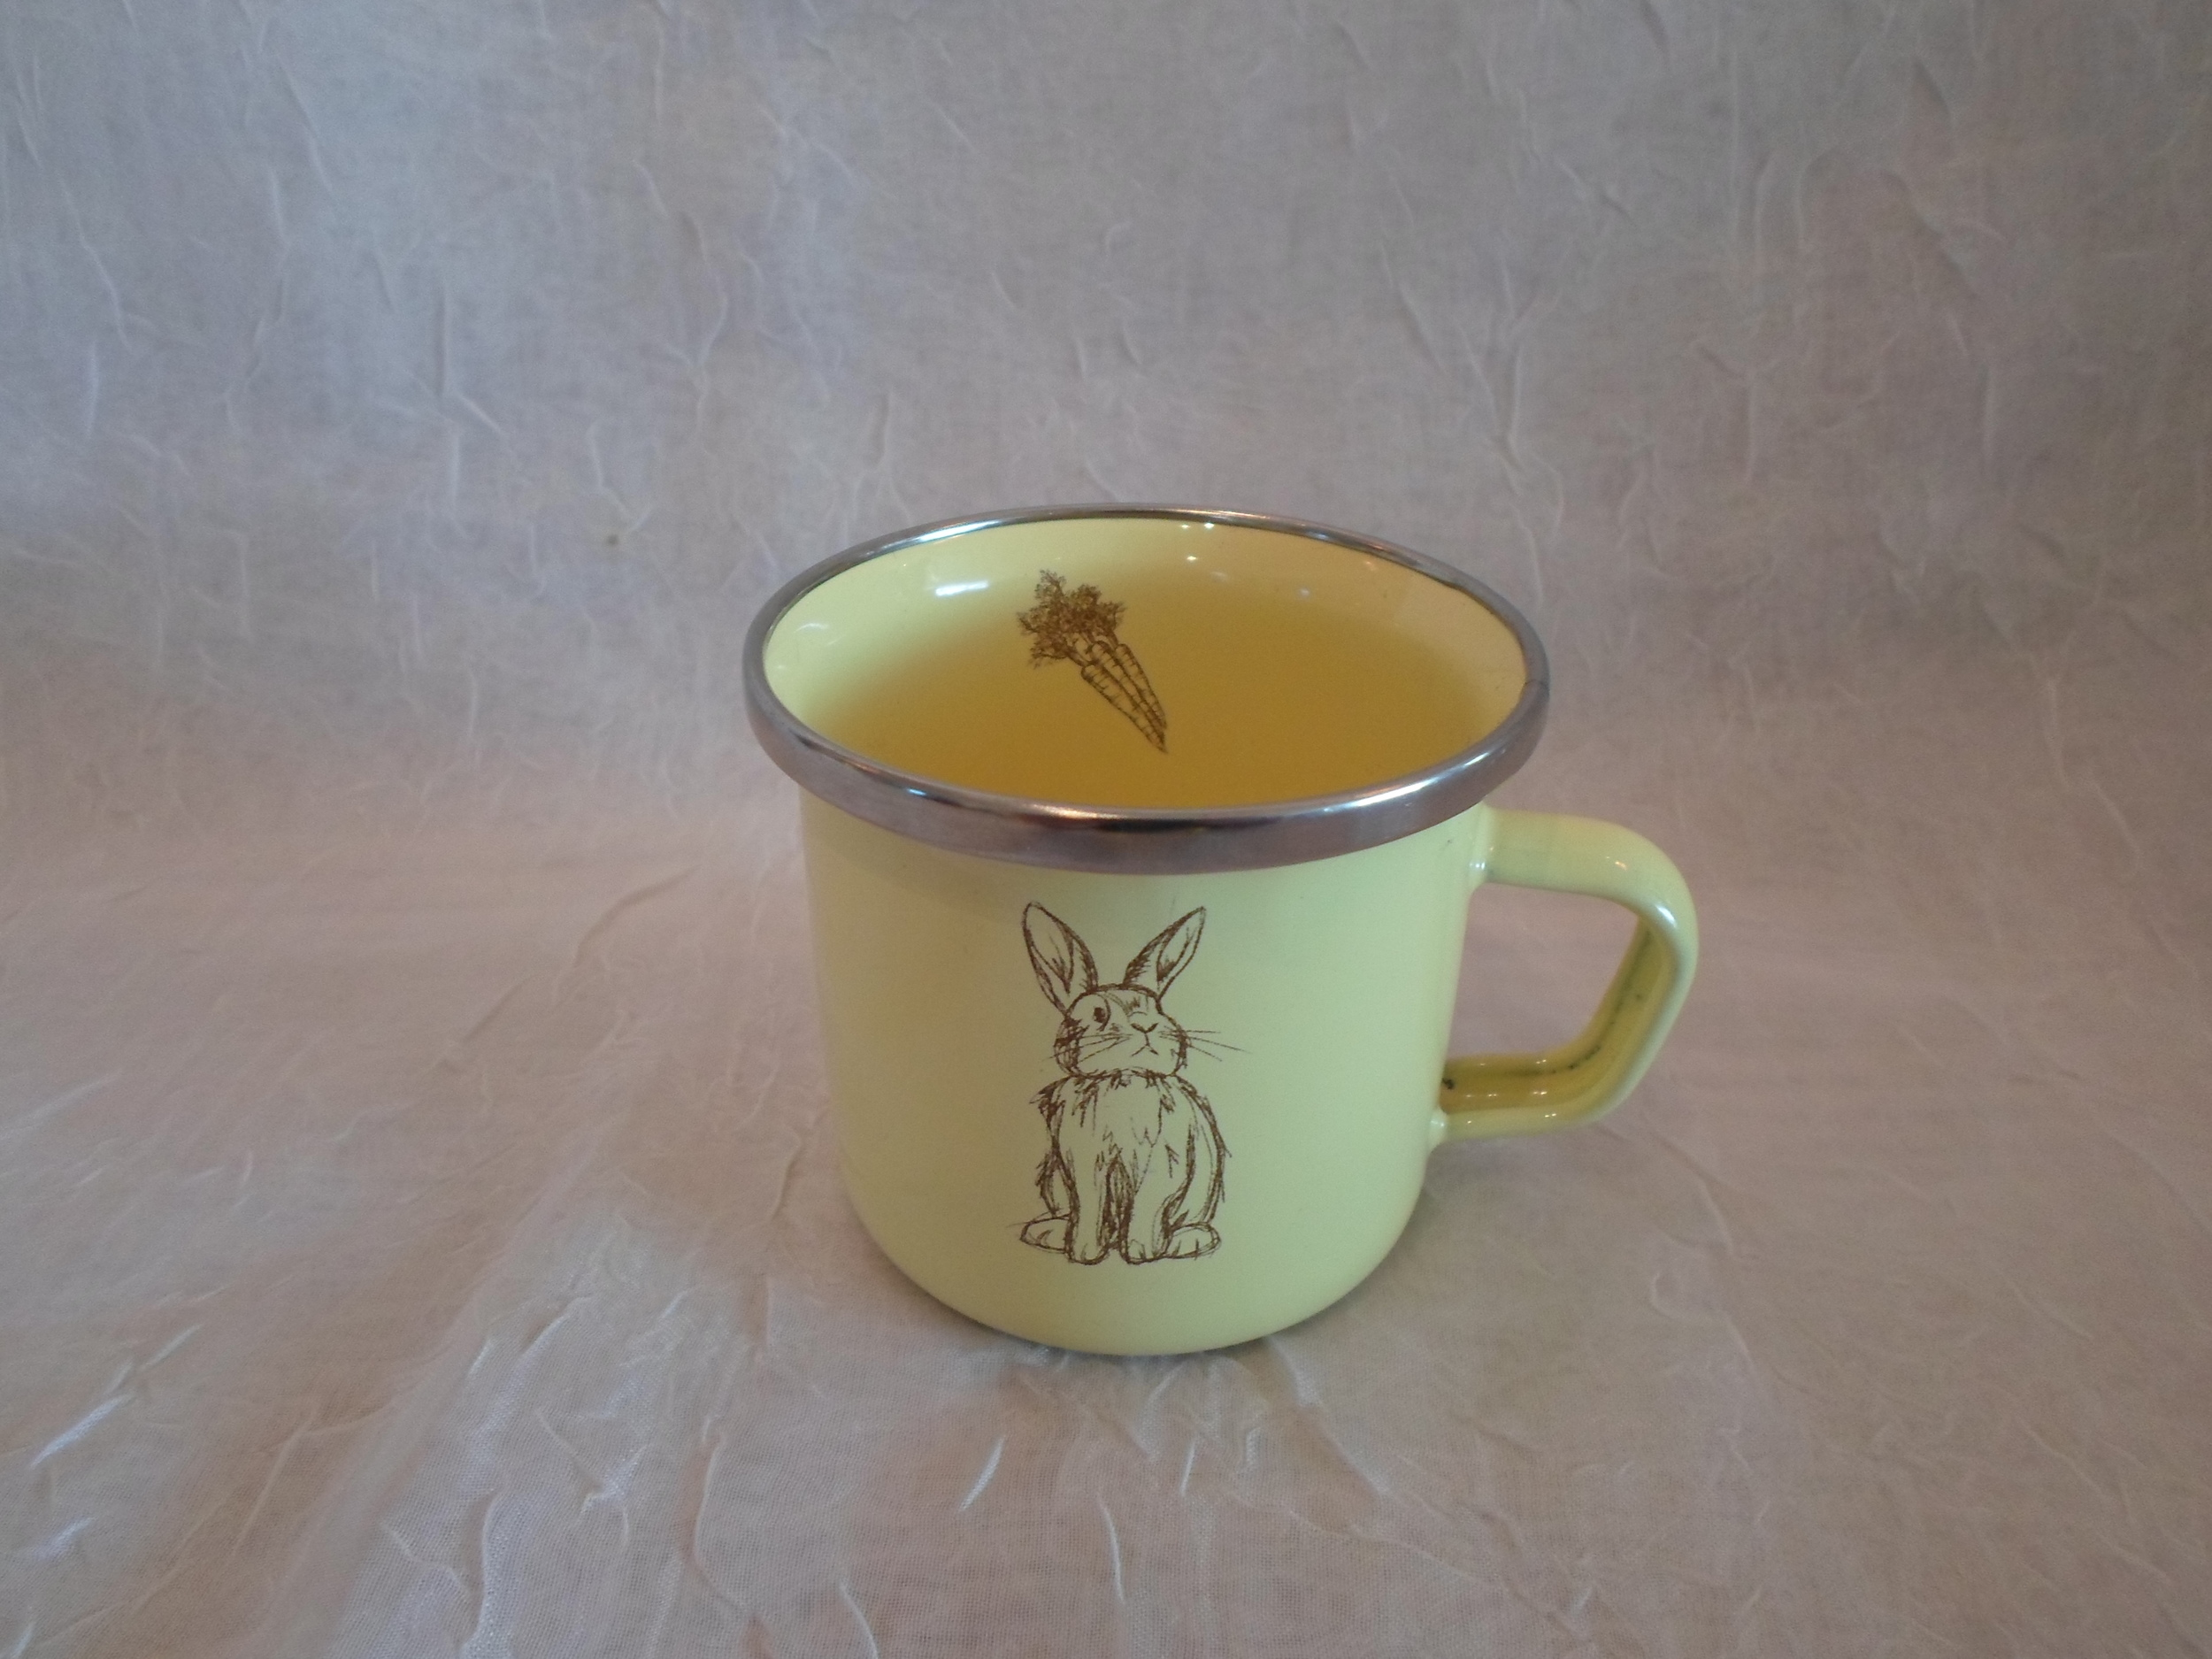 Enamelware Bunny Mug    in yellow, pink or blue    $8.95    Wants 1  PURCHASED